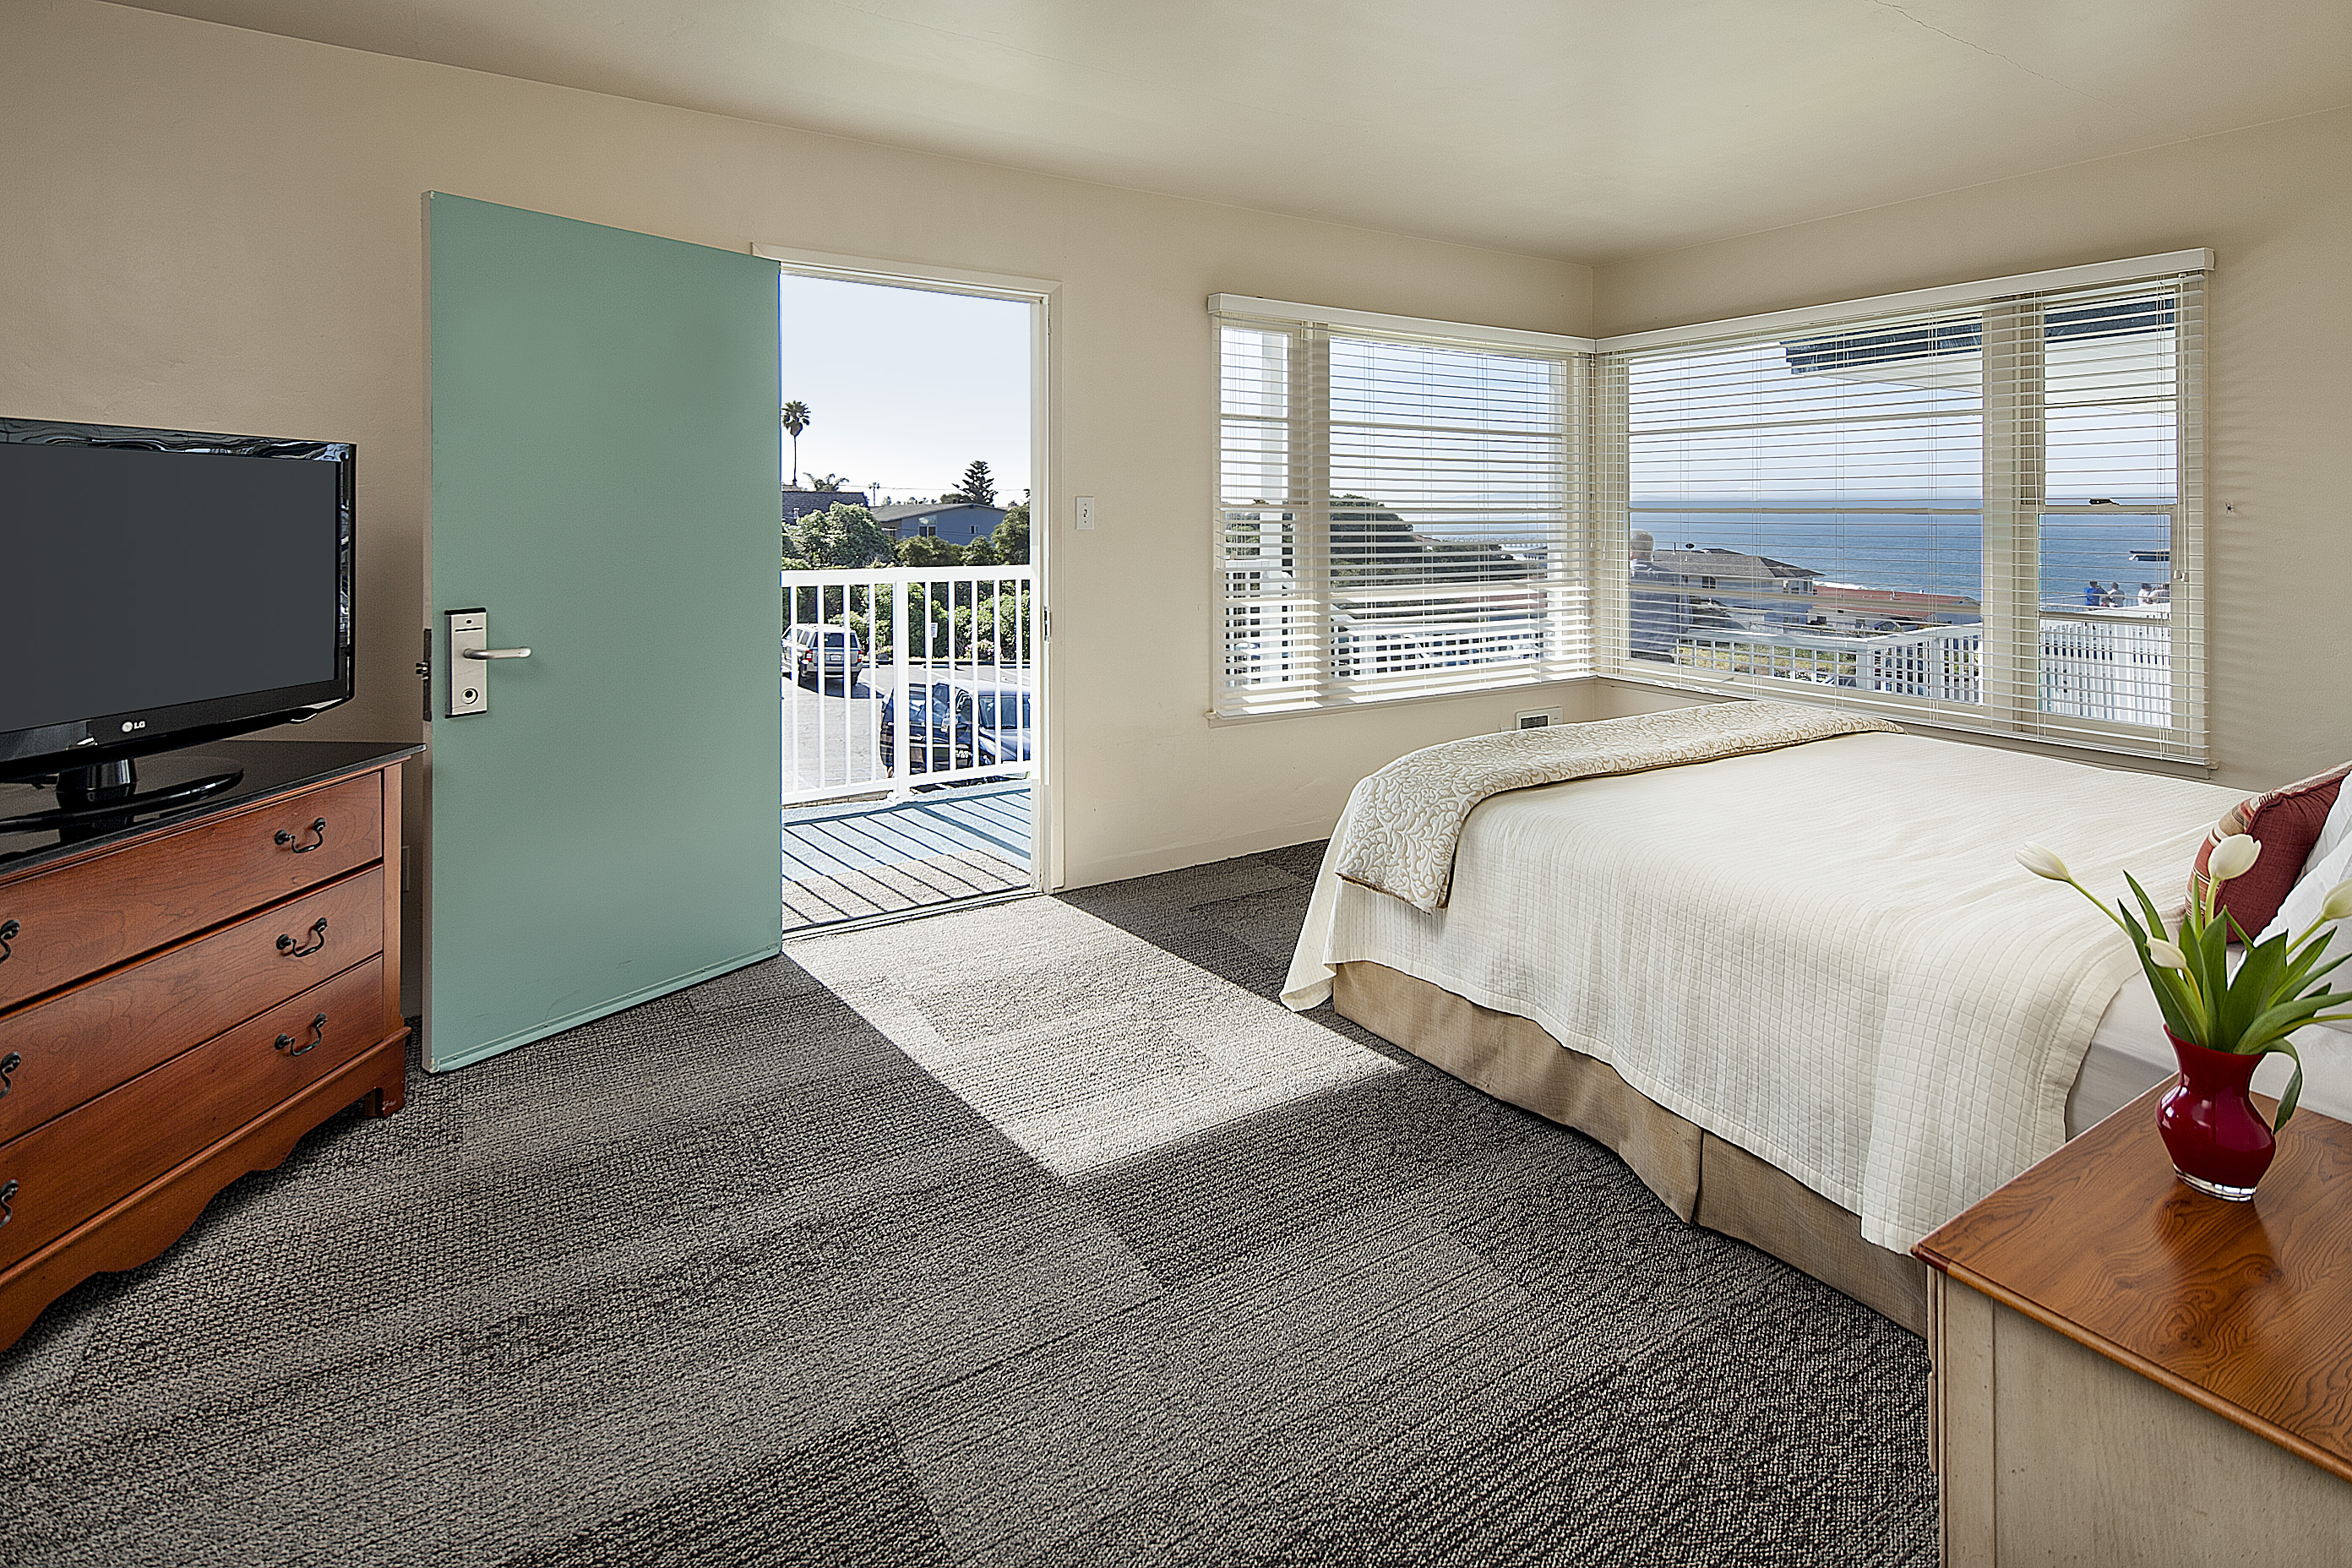 pismo beach chat rooms Find the best deals on cheap hotels near pismo beach with travelocity cheap hotels in pismo beach rooms adults (18.